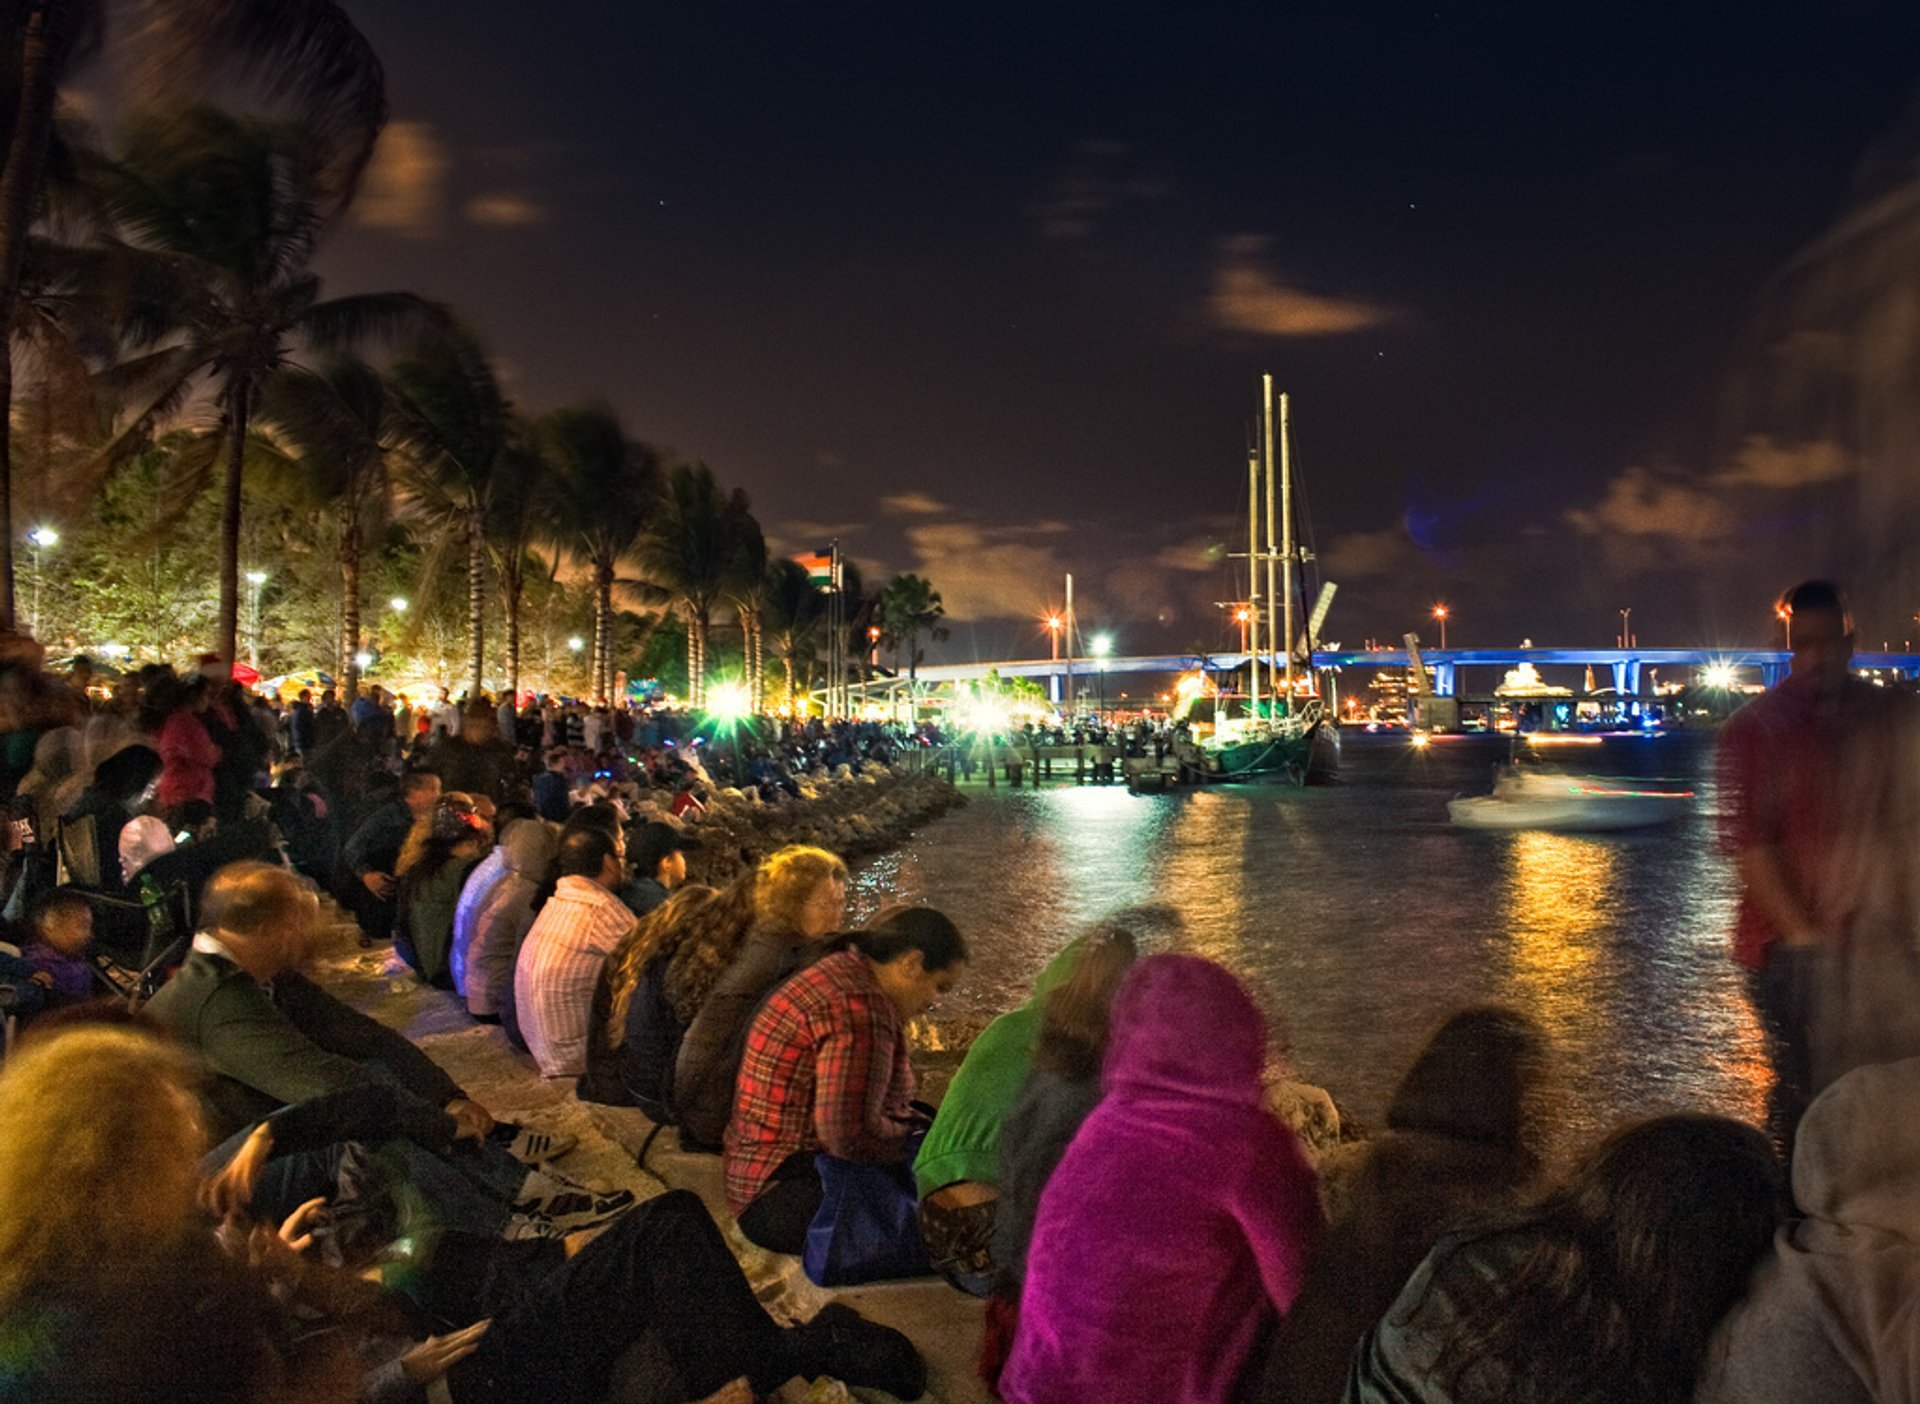 New Year's Eve at Bayfront Park, Miami in Miami - Best Season 2020